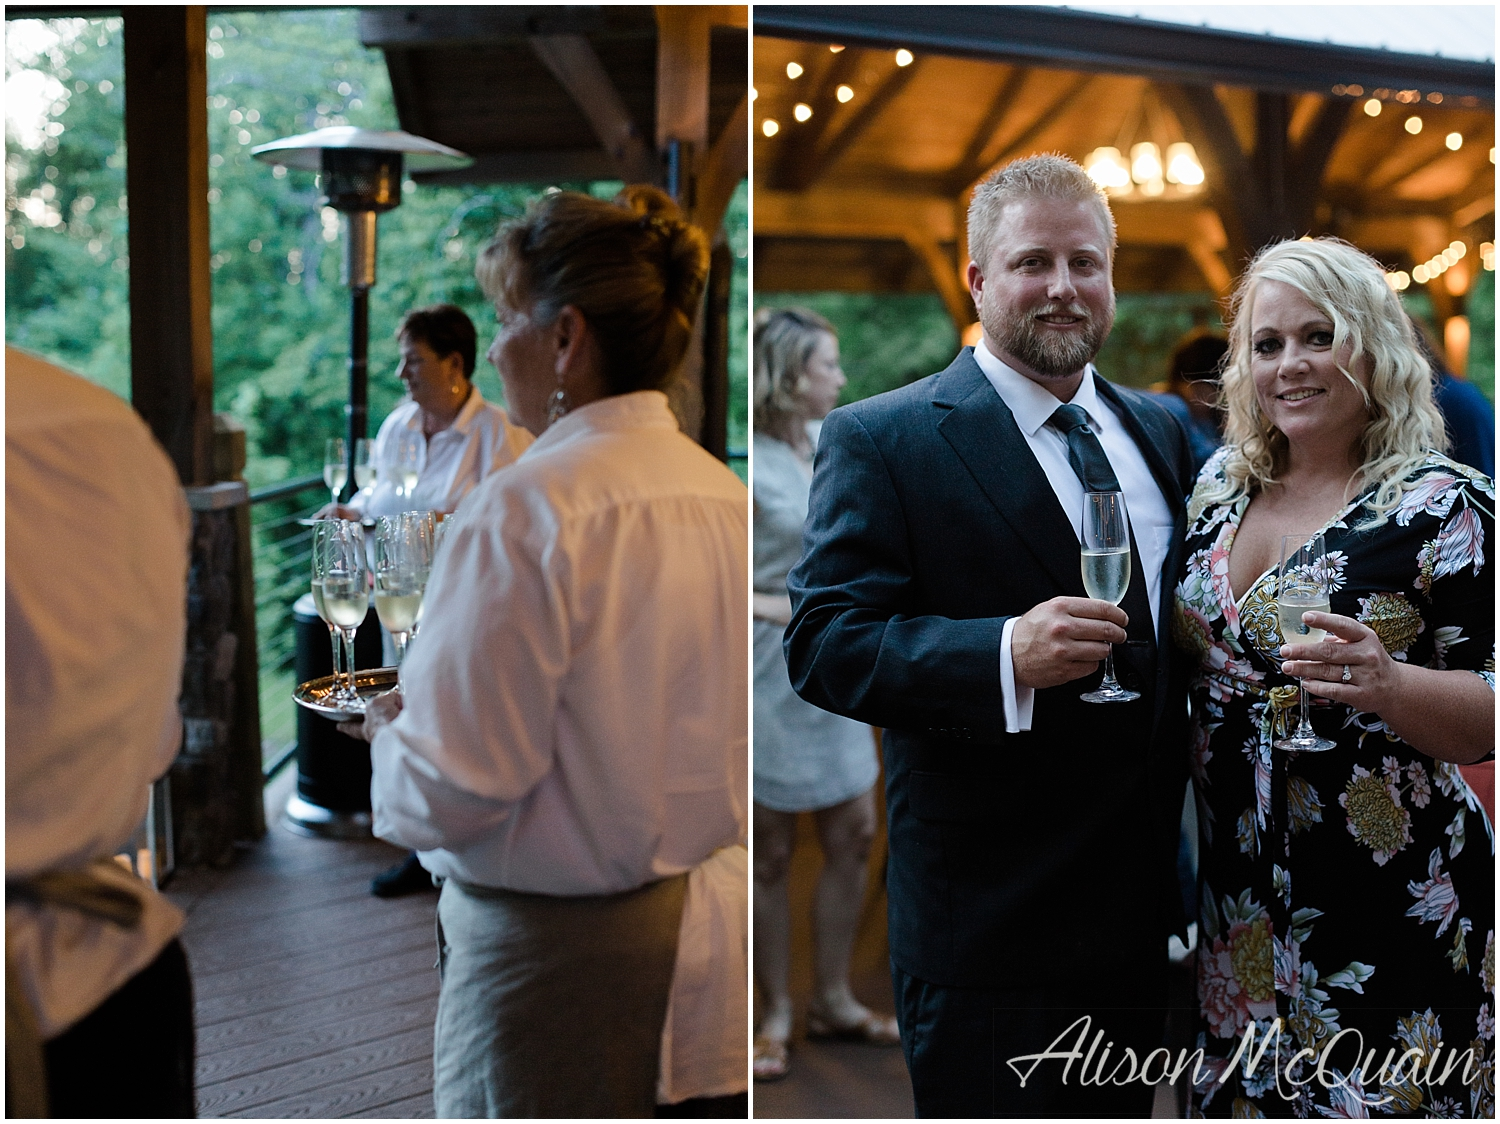 2018-05-23_0037LandC_wedding_dancingbearlodge_townsend_tn_amp.jpg